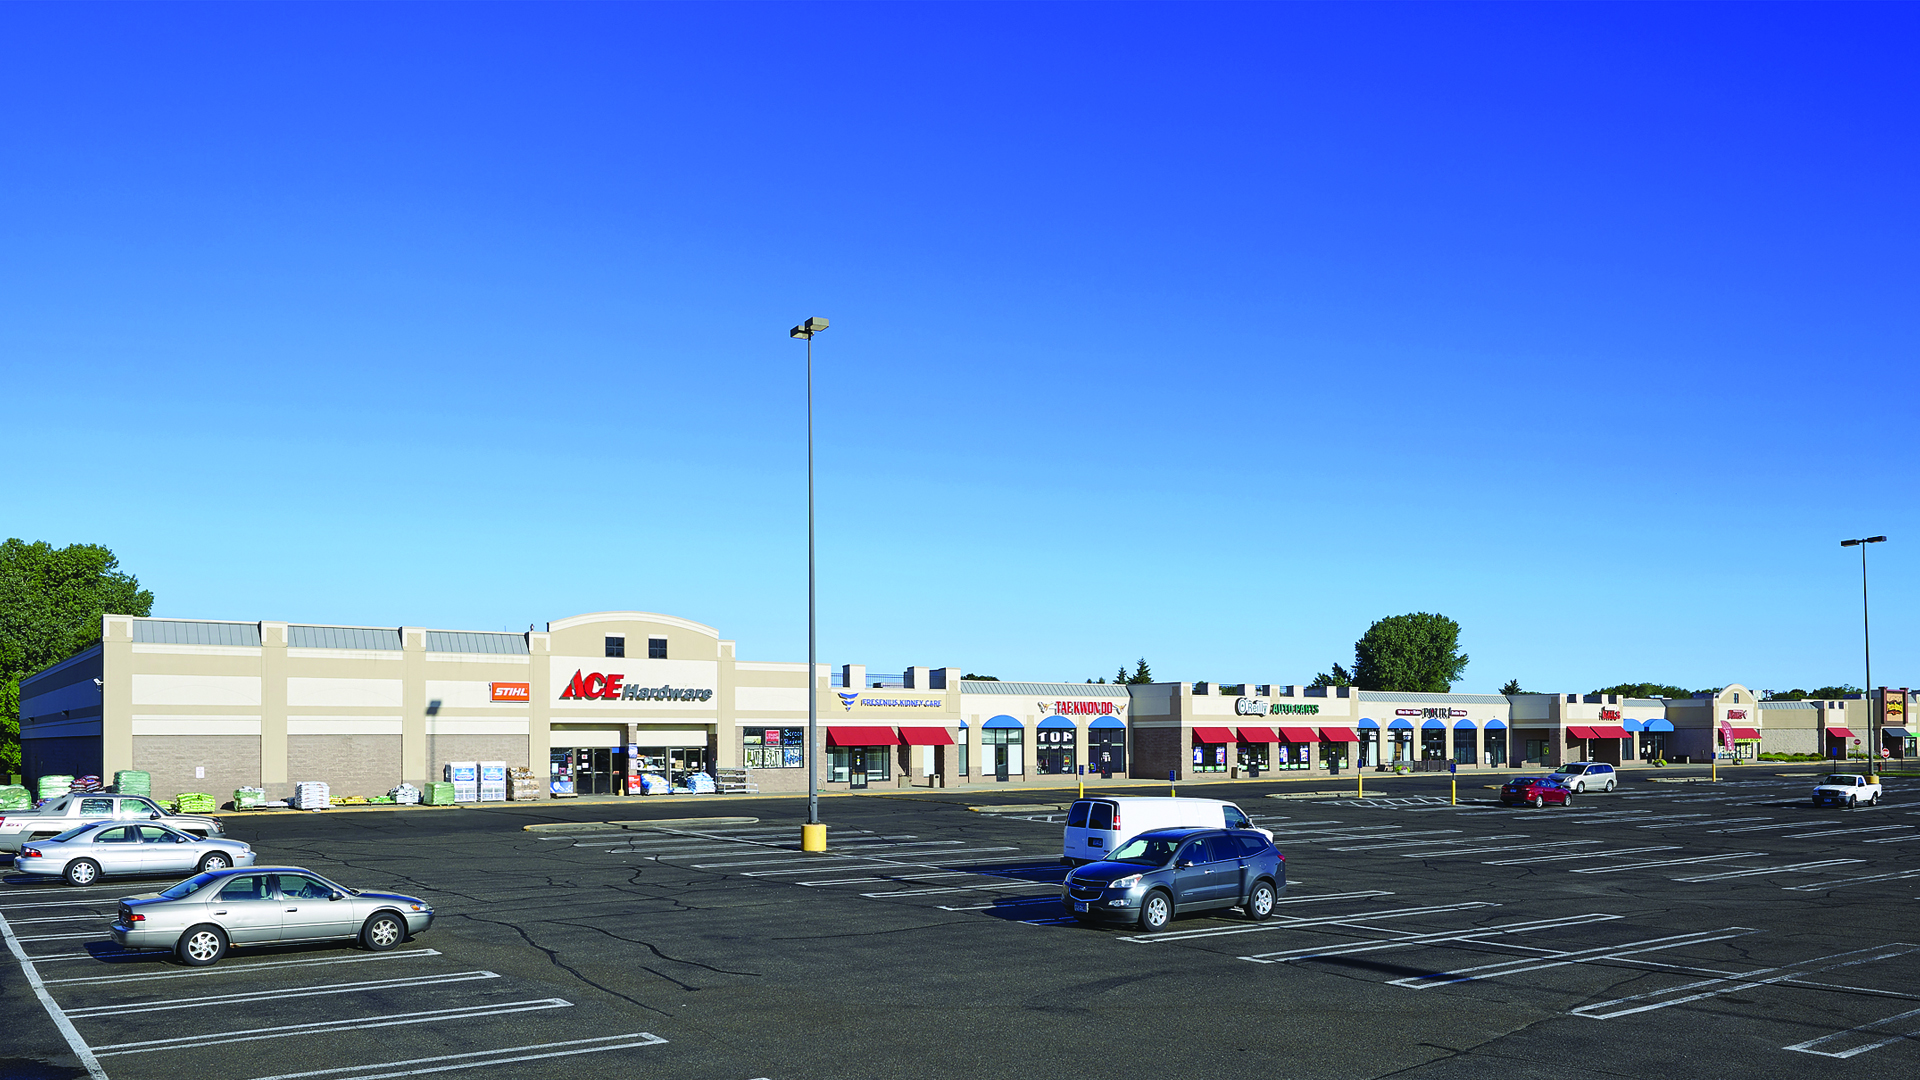 Champlin Plaza Shopping Center Champlin MN View of strip mall featuring anchor ACE Hardware